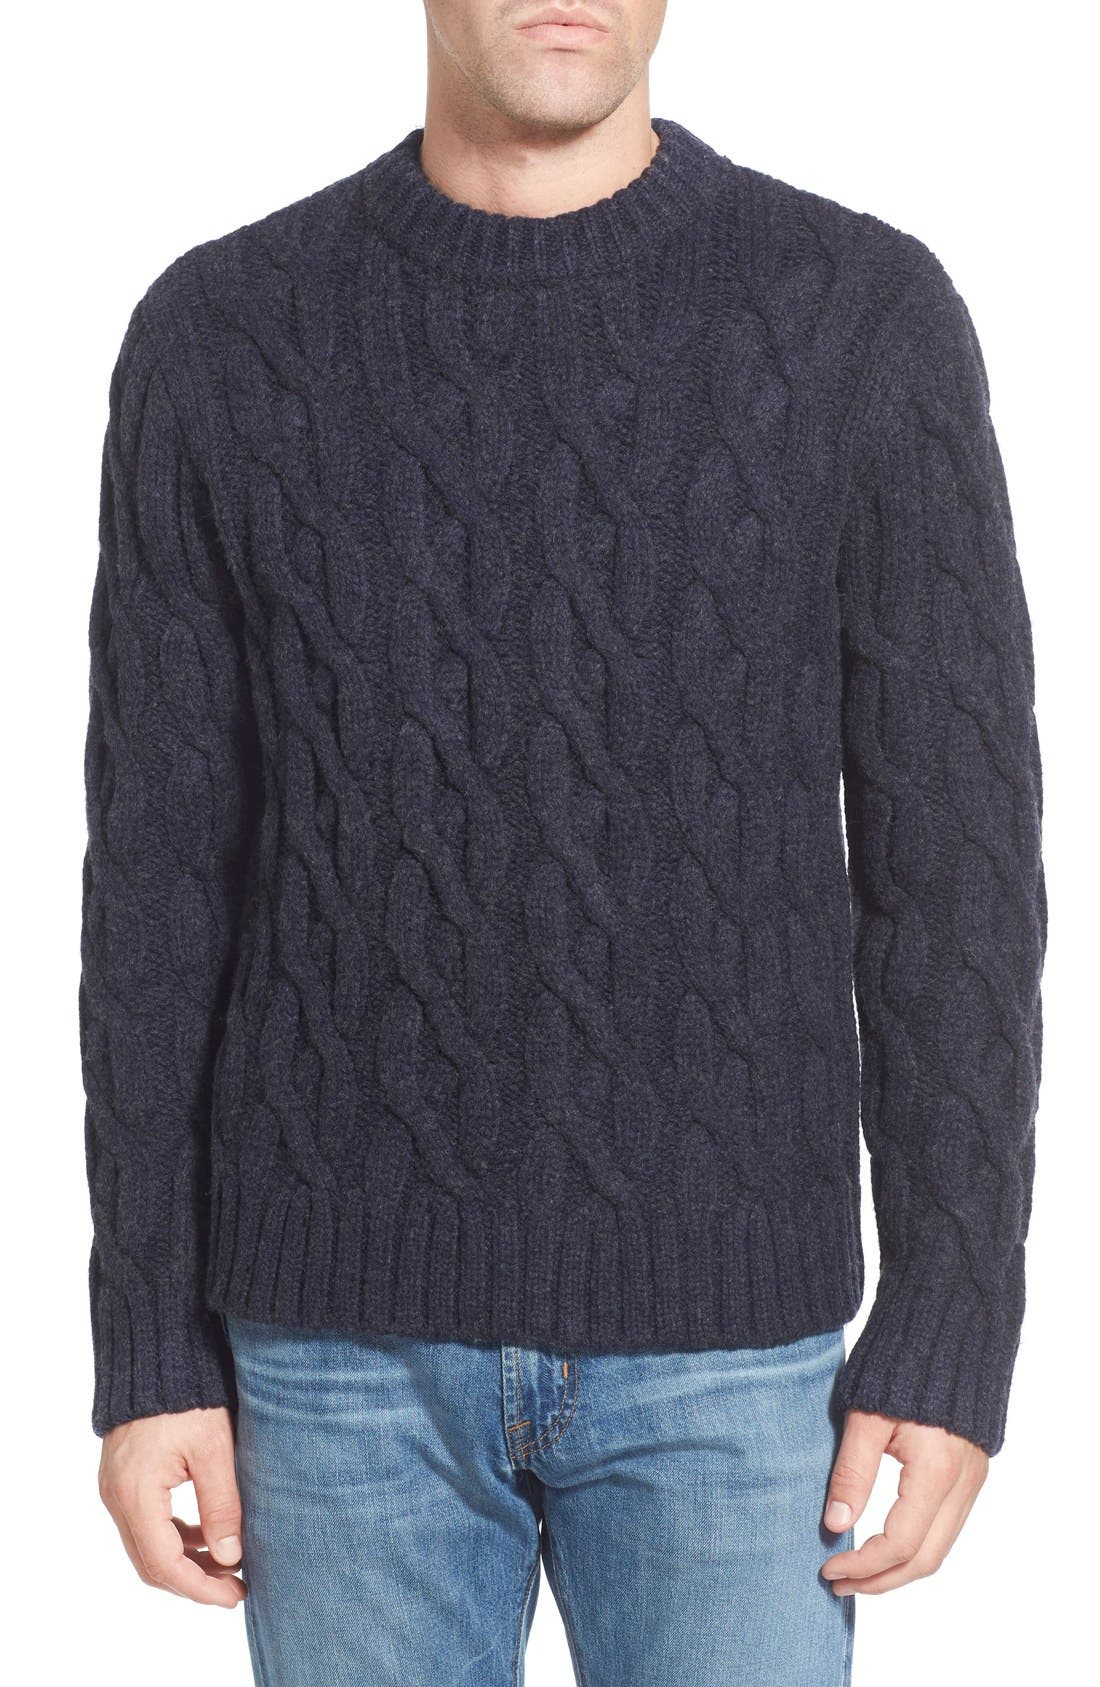 SCHOTT NYC Regular Fit Cable Knit Crewneck Wool Blend Sweater, Main, color, 410